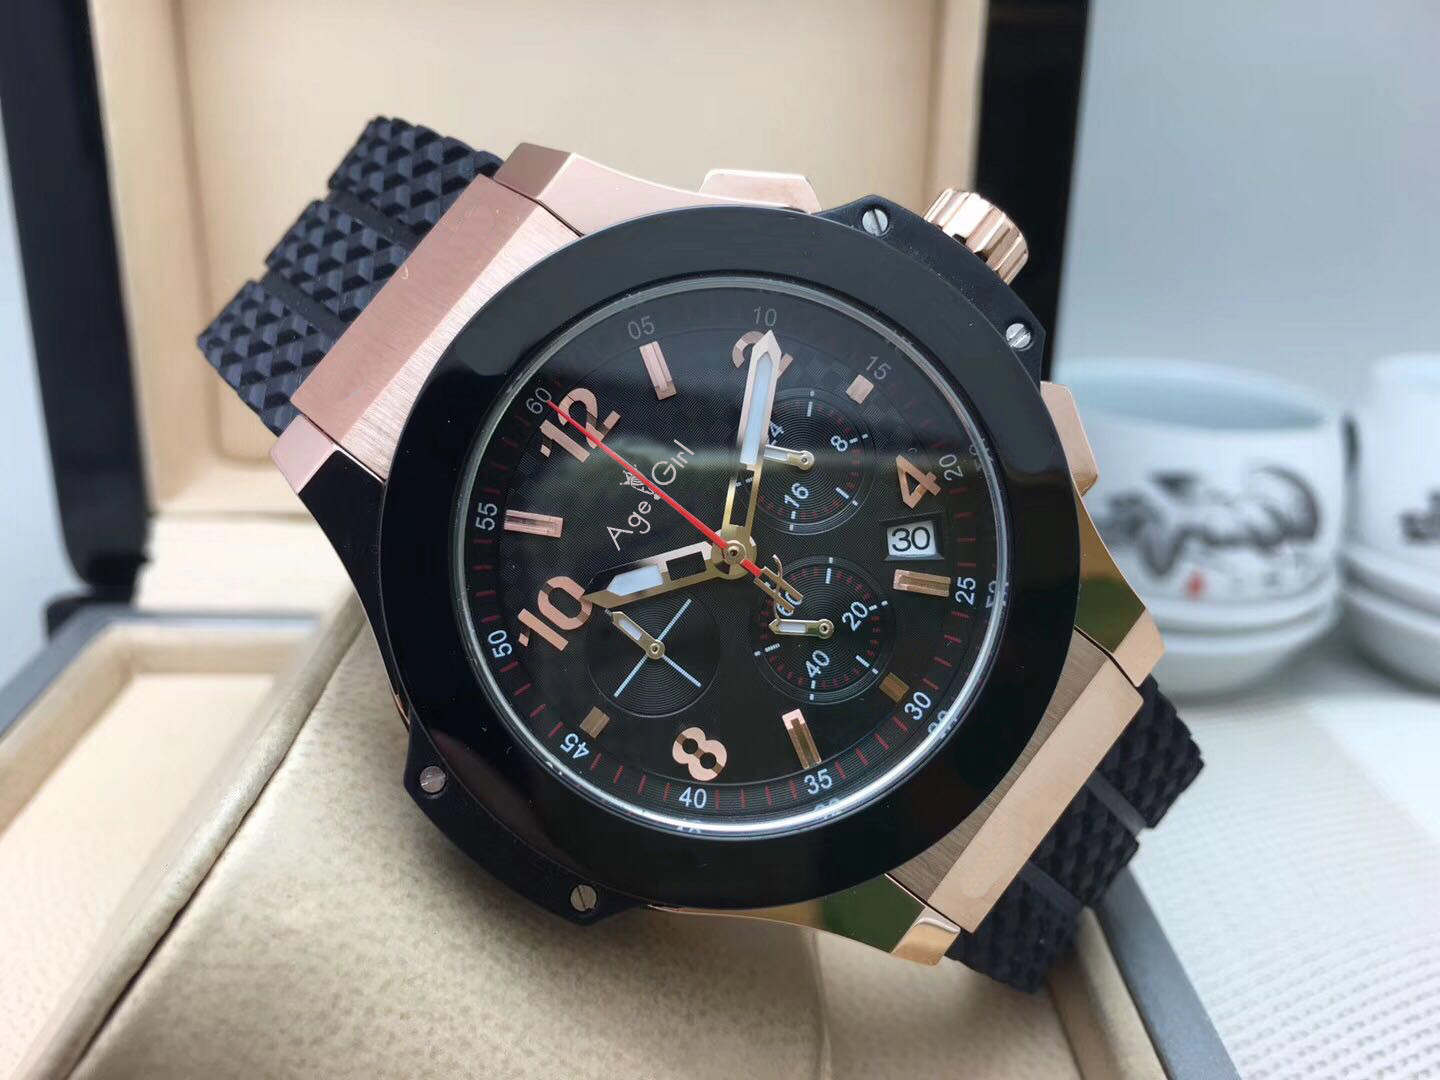 Luxury Brand New Men StopWatch Quartz Chronograph Watch Rose Gold Silver Black Rubber Sapphire Big Watches Limited Sport AAA+Luxury Brand New Men StopWatch Quartz Chronograph Watch Rose Gold Silver Black Rubber Sapphire Big Watches Limited Sport AAA+